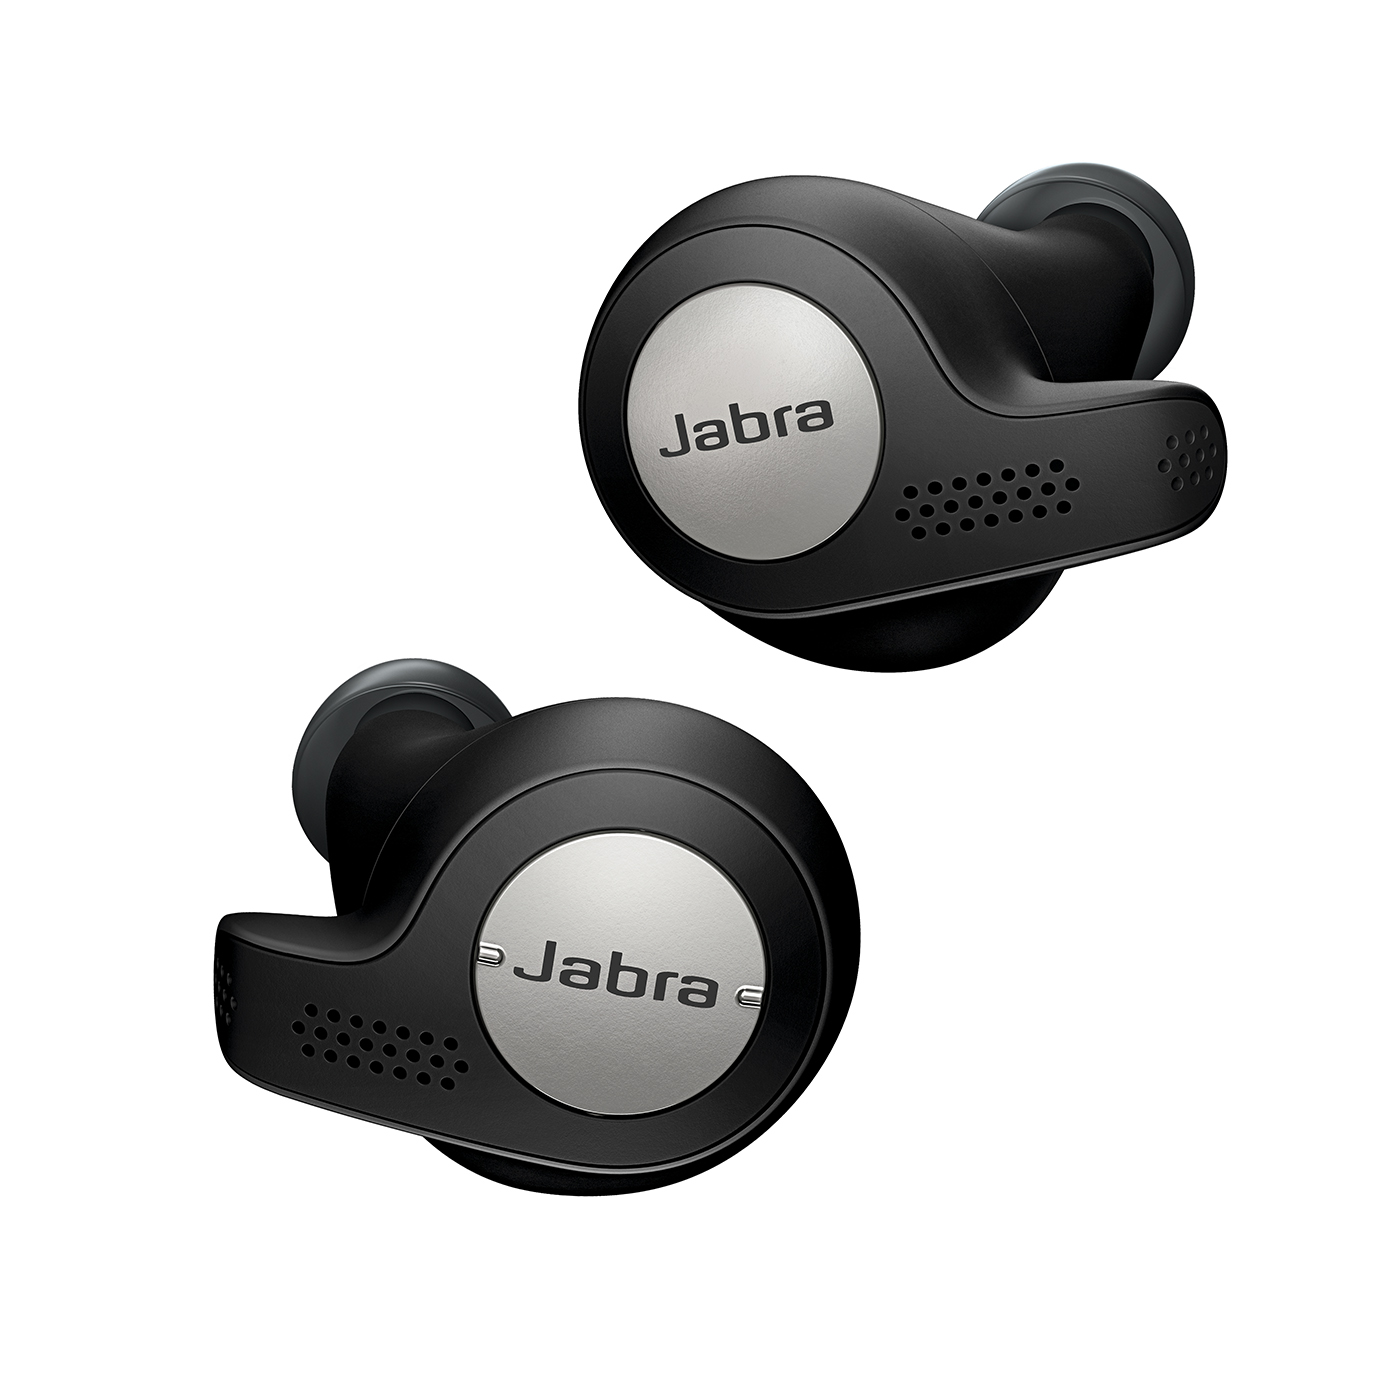 Jabra-Elite-Active-65t-True-Wireless-Earbuds-Manufacturer-Refurbished thumbnail 10